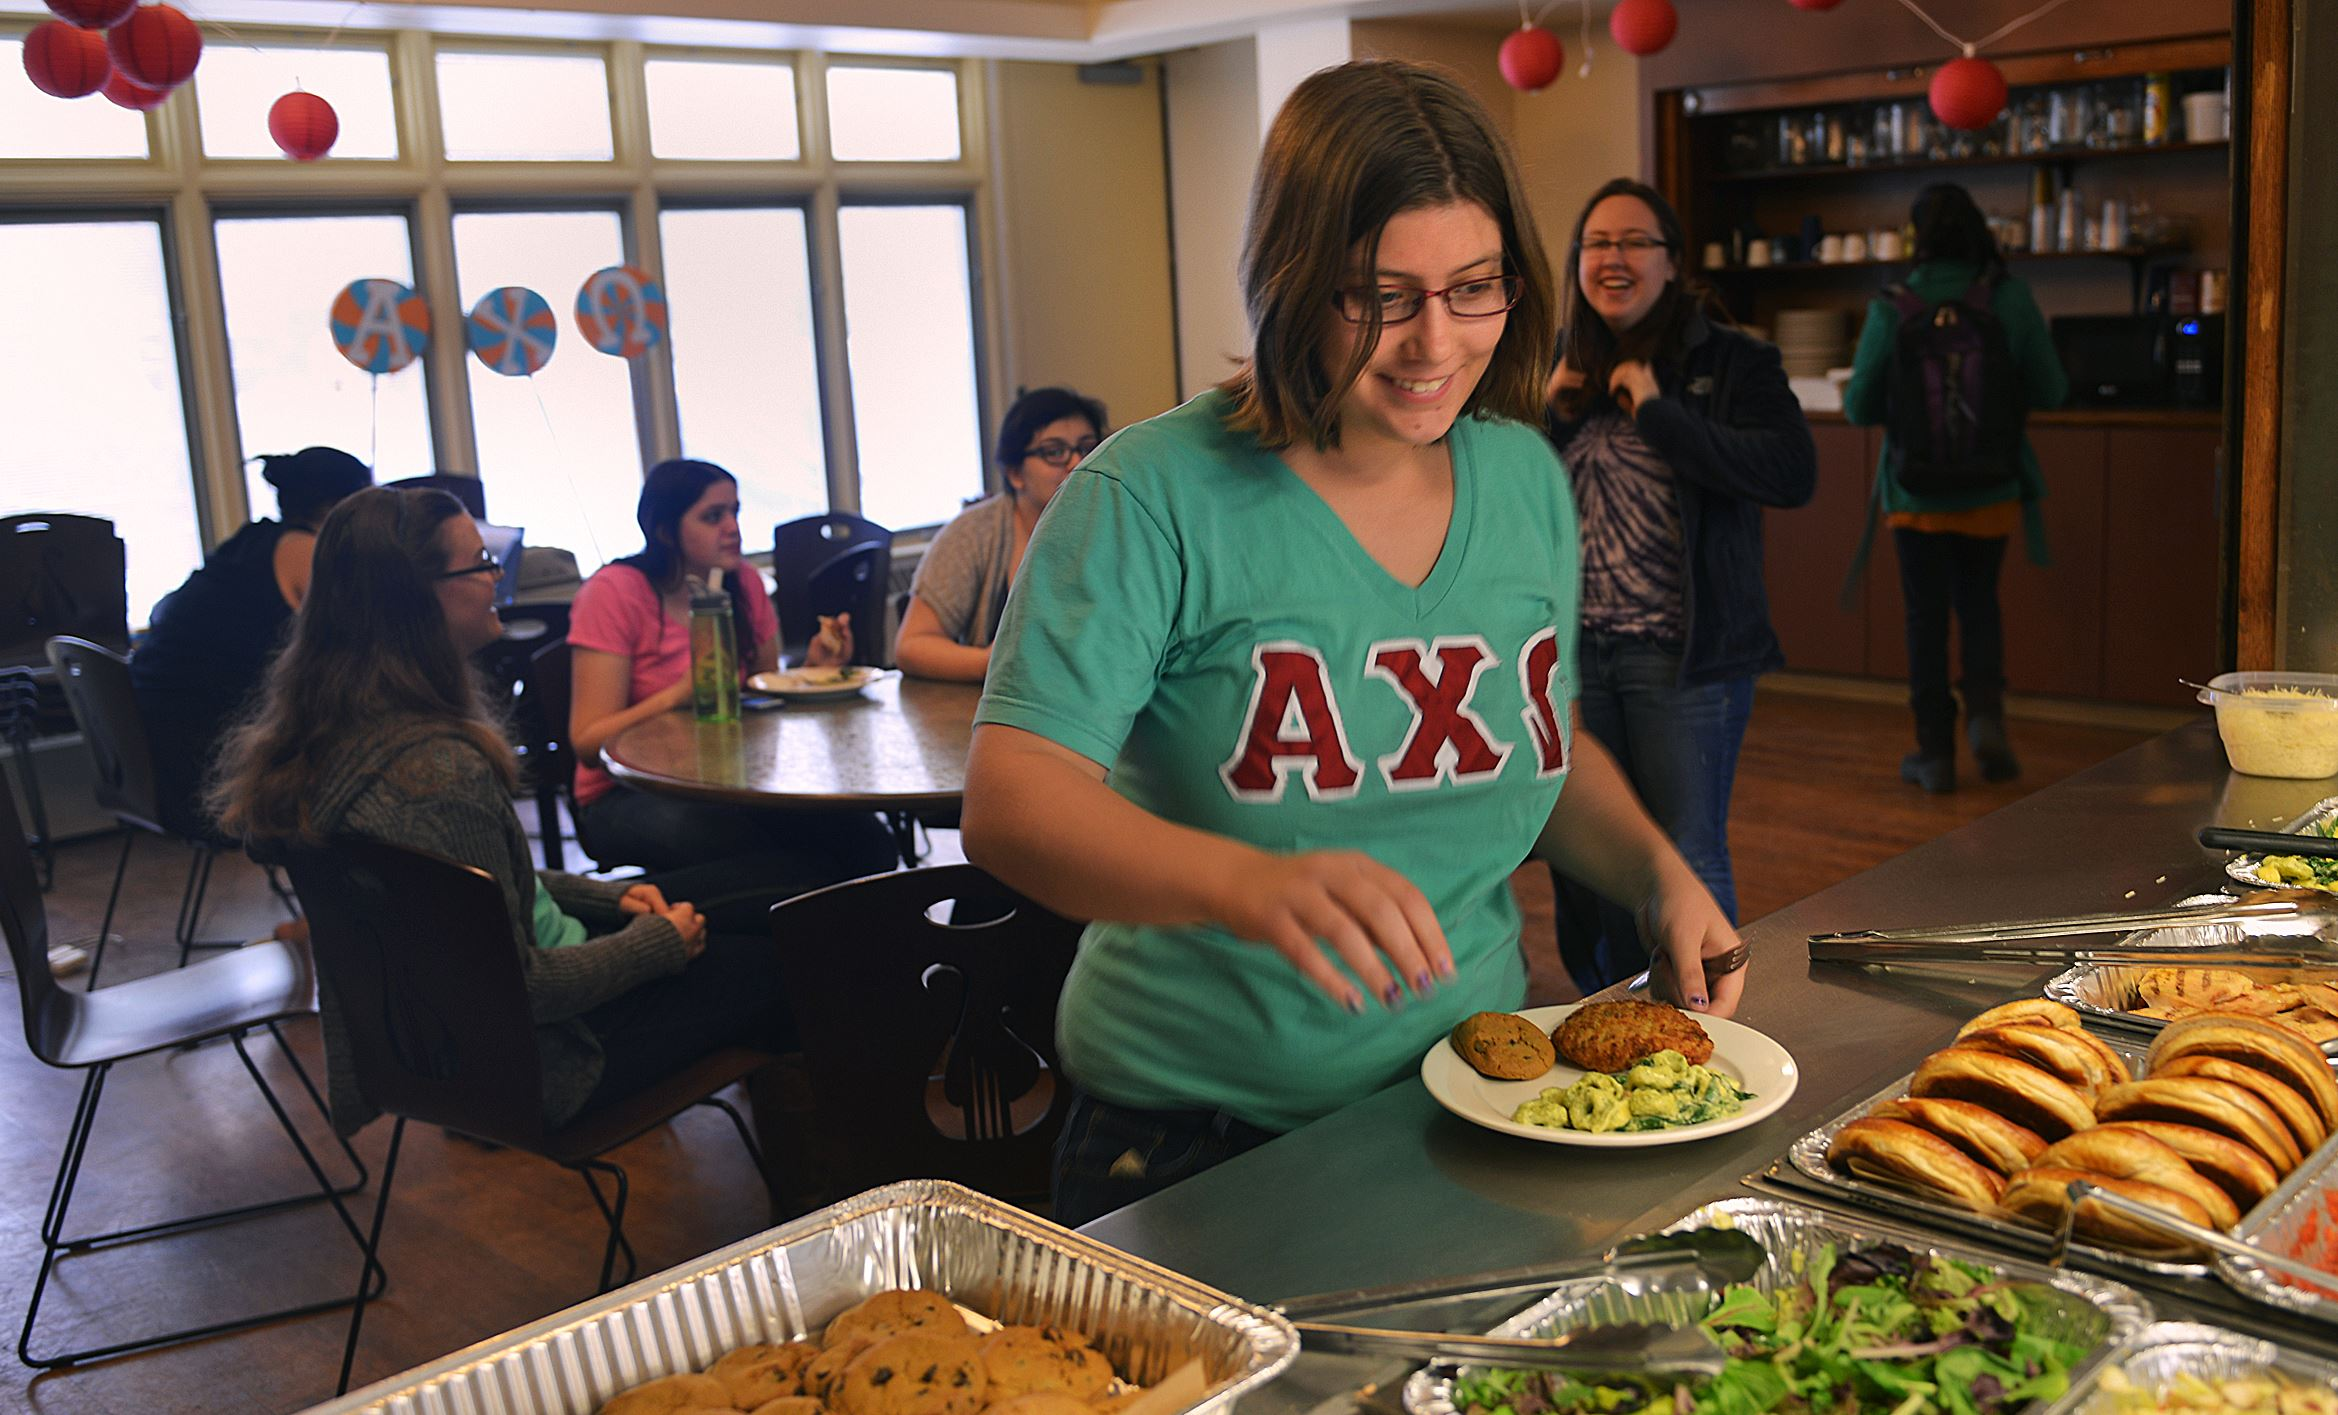 20140403lrsororityfood06-3  Annika Peterson, a 21-year-old junior, looks to add to her plate of oven-baked chicken breast, tortellini and a chocolate-chip cookie from the offerings for lunch at Alpha Chi Omega sorority created by Debbie Fajerski.